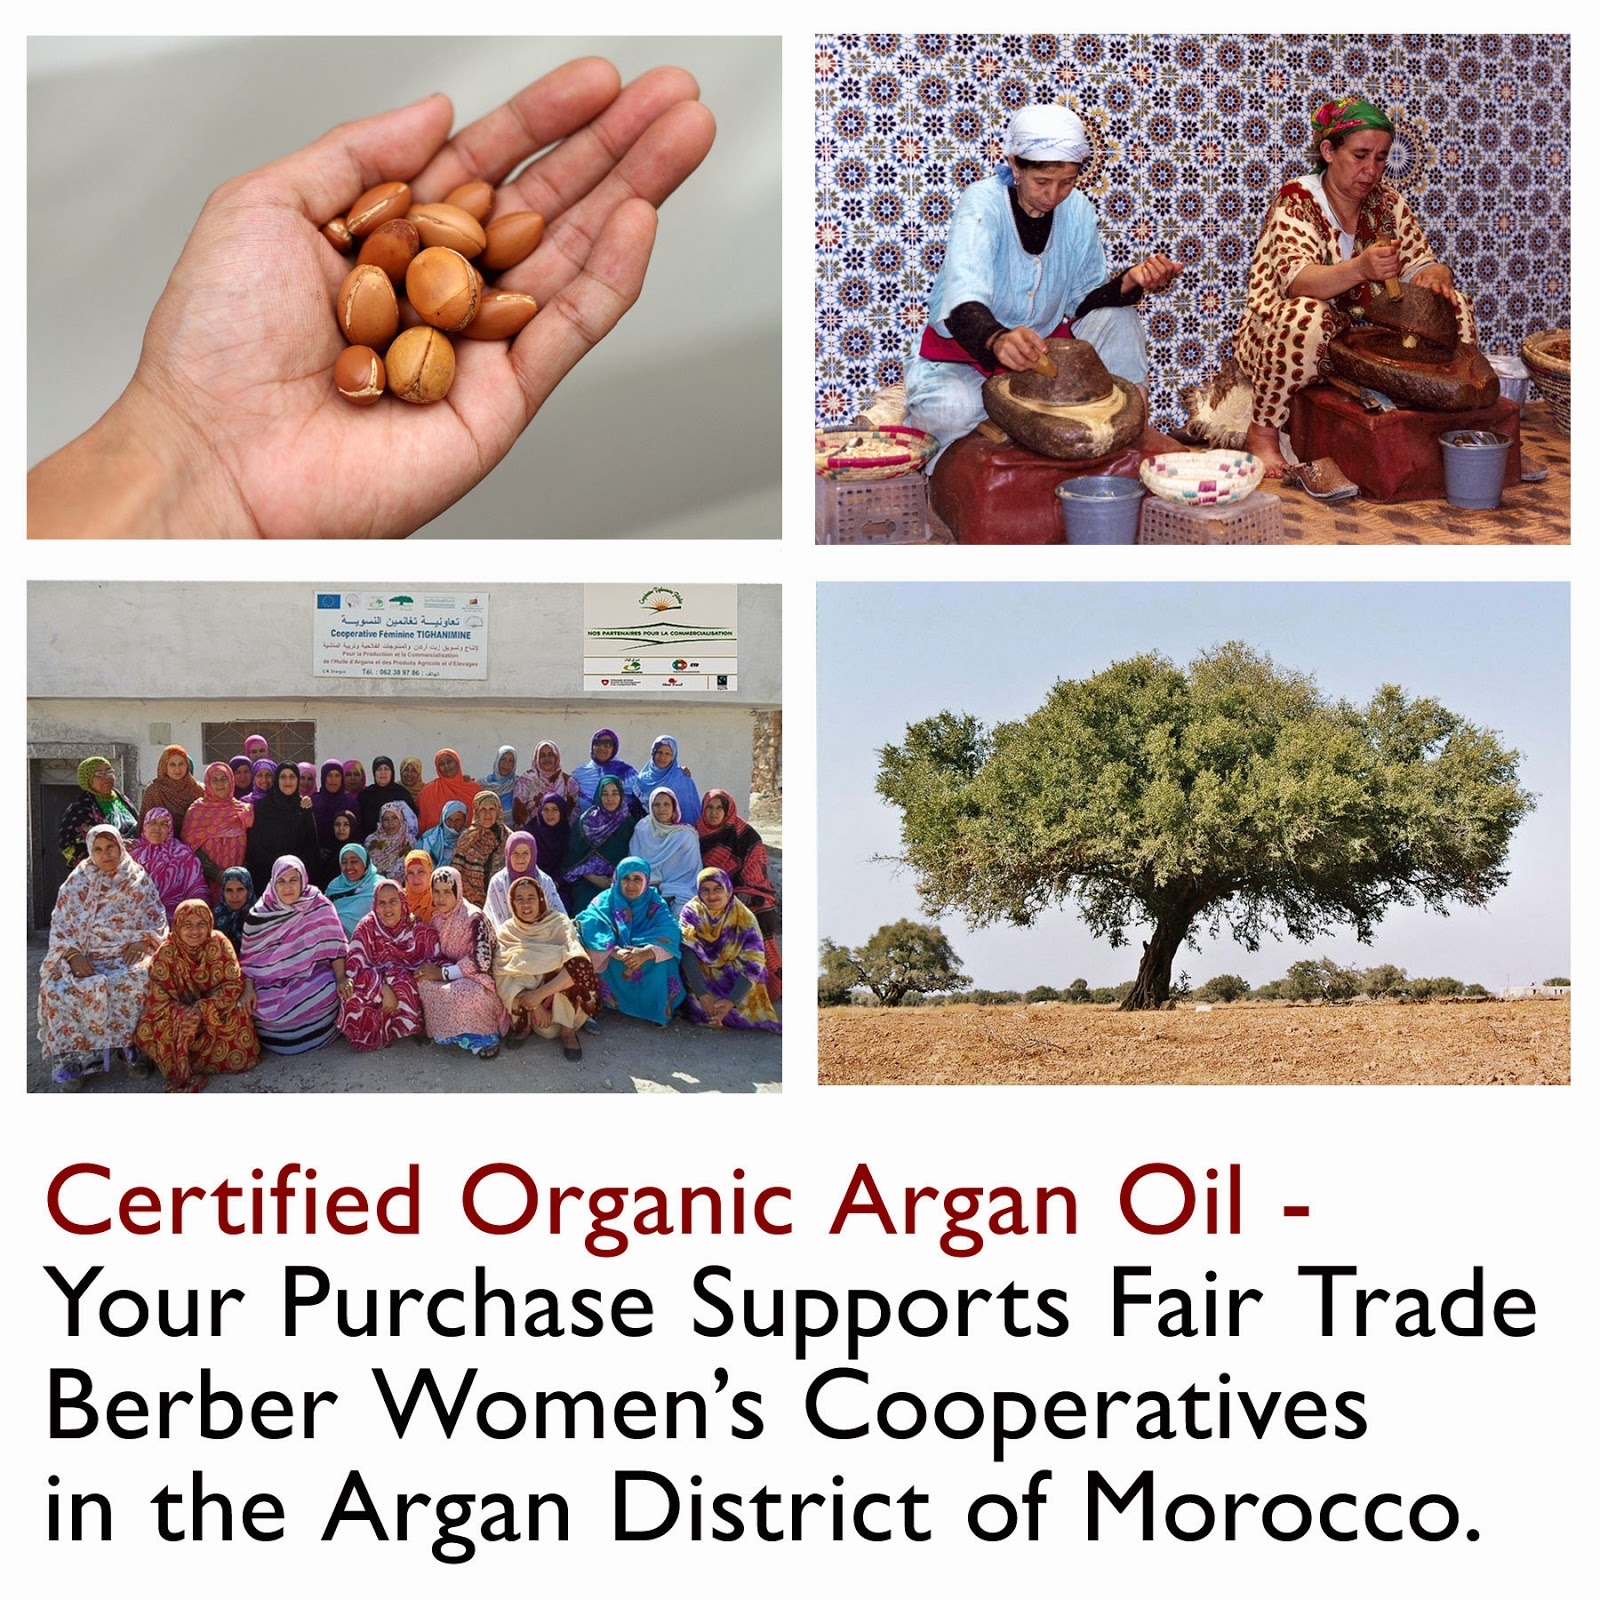 http://www.amazon.com/best-morocco-argan-hair-treatment/dp/b00gxbev0a/ref=sr_1_57?ie=utf8&qid=1399741825&sr=8-57&keywords=argan+oil+for+hair